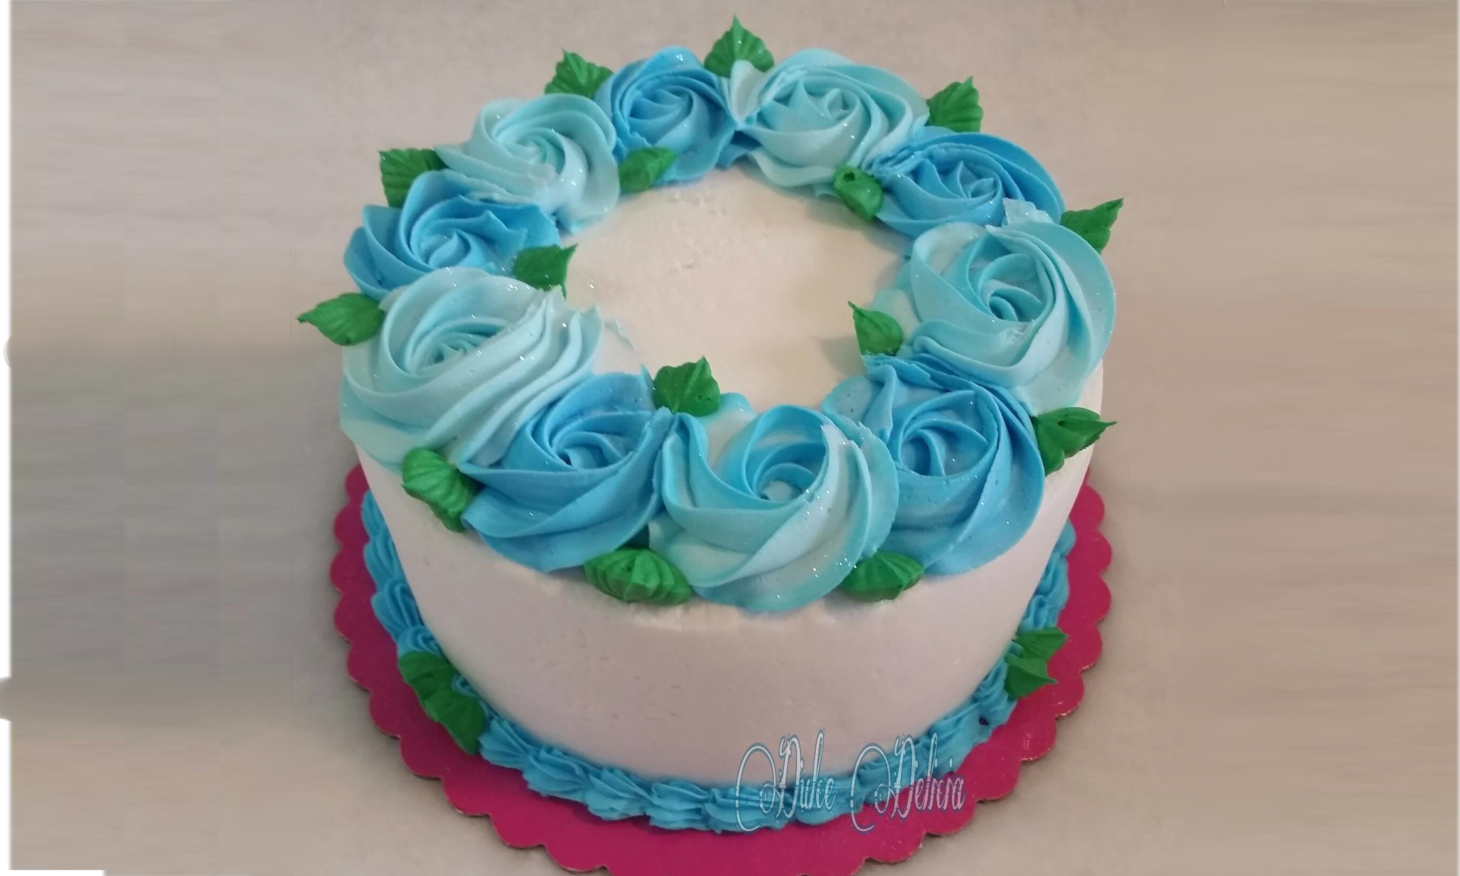 BlueFlowers_Cake